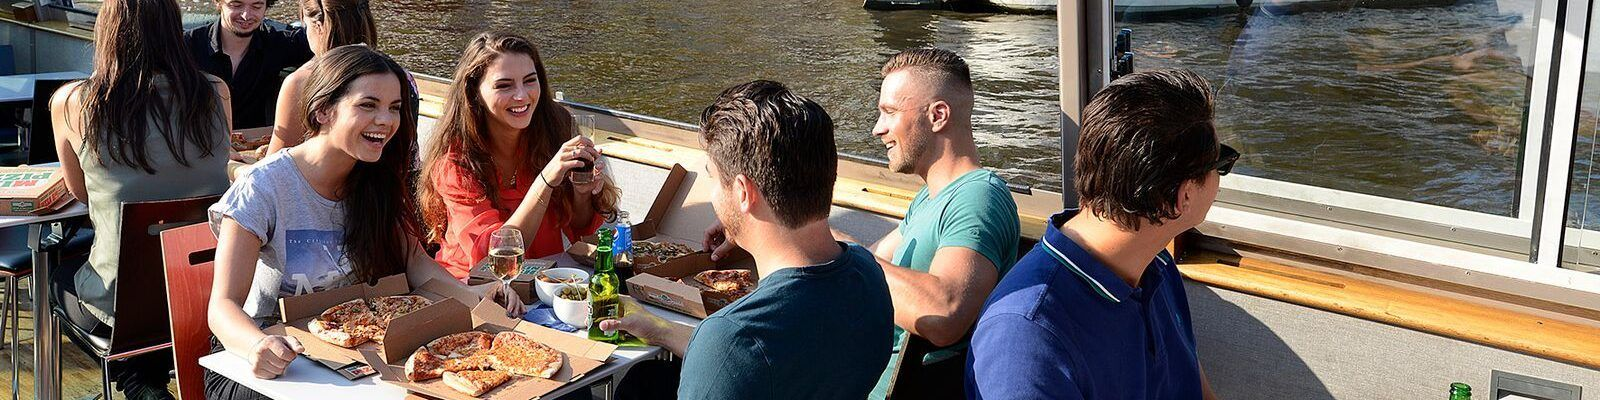 Amsterdam Canal Pizza Cruise